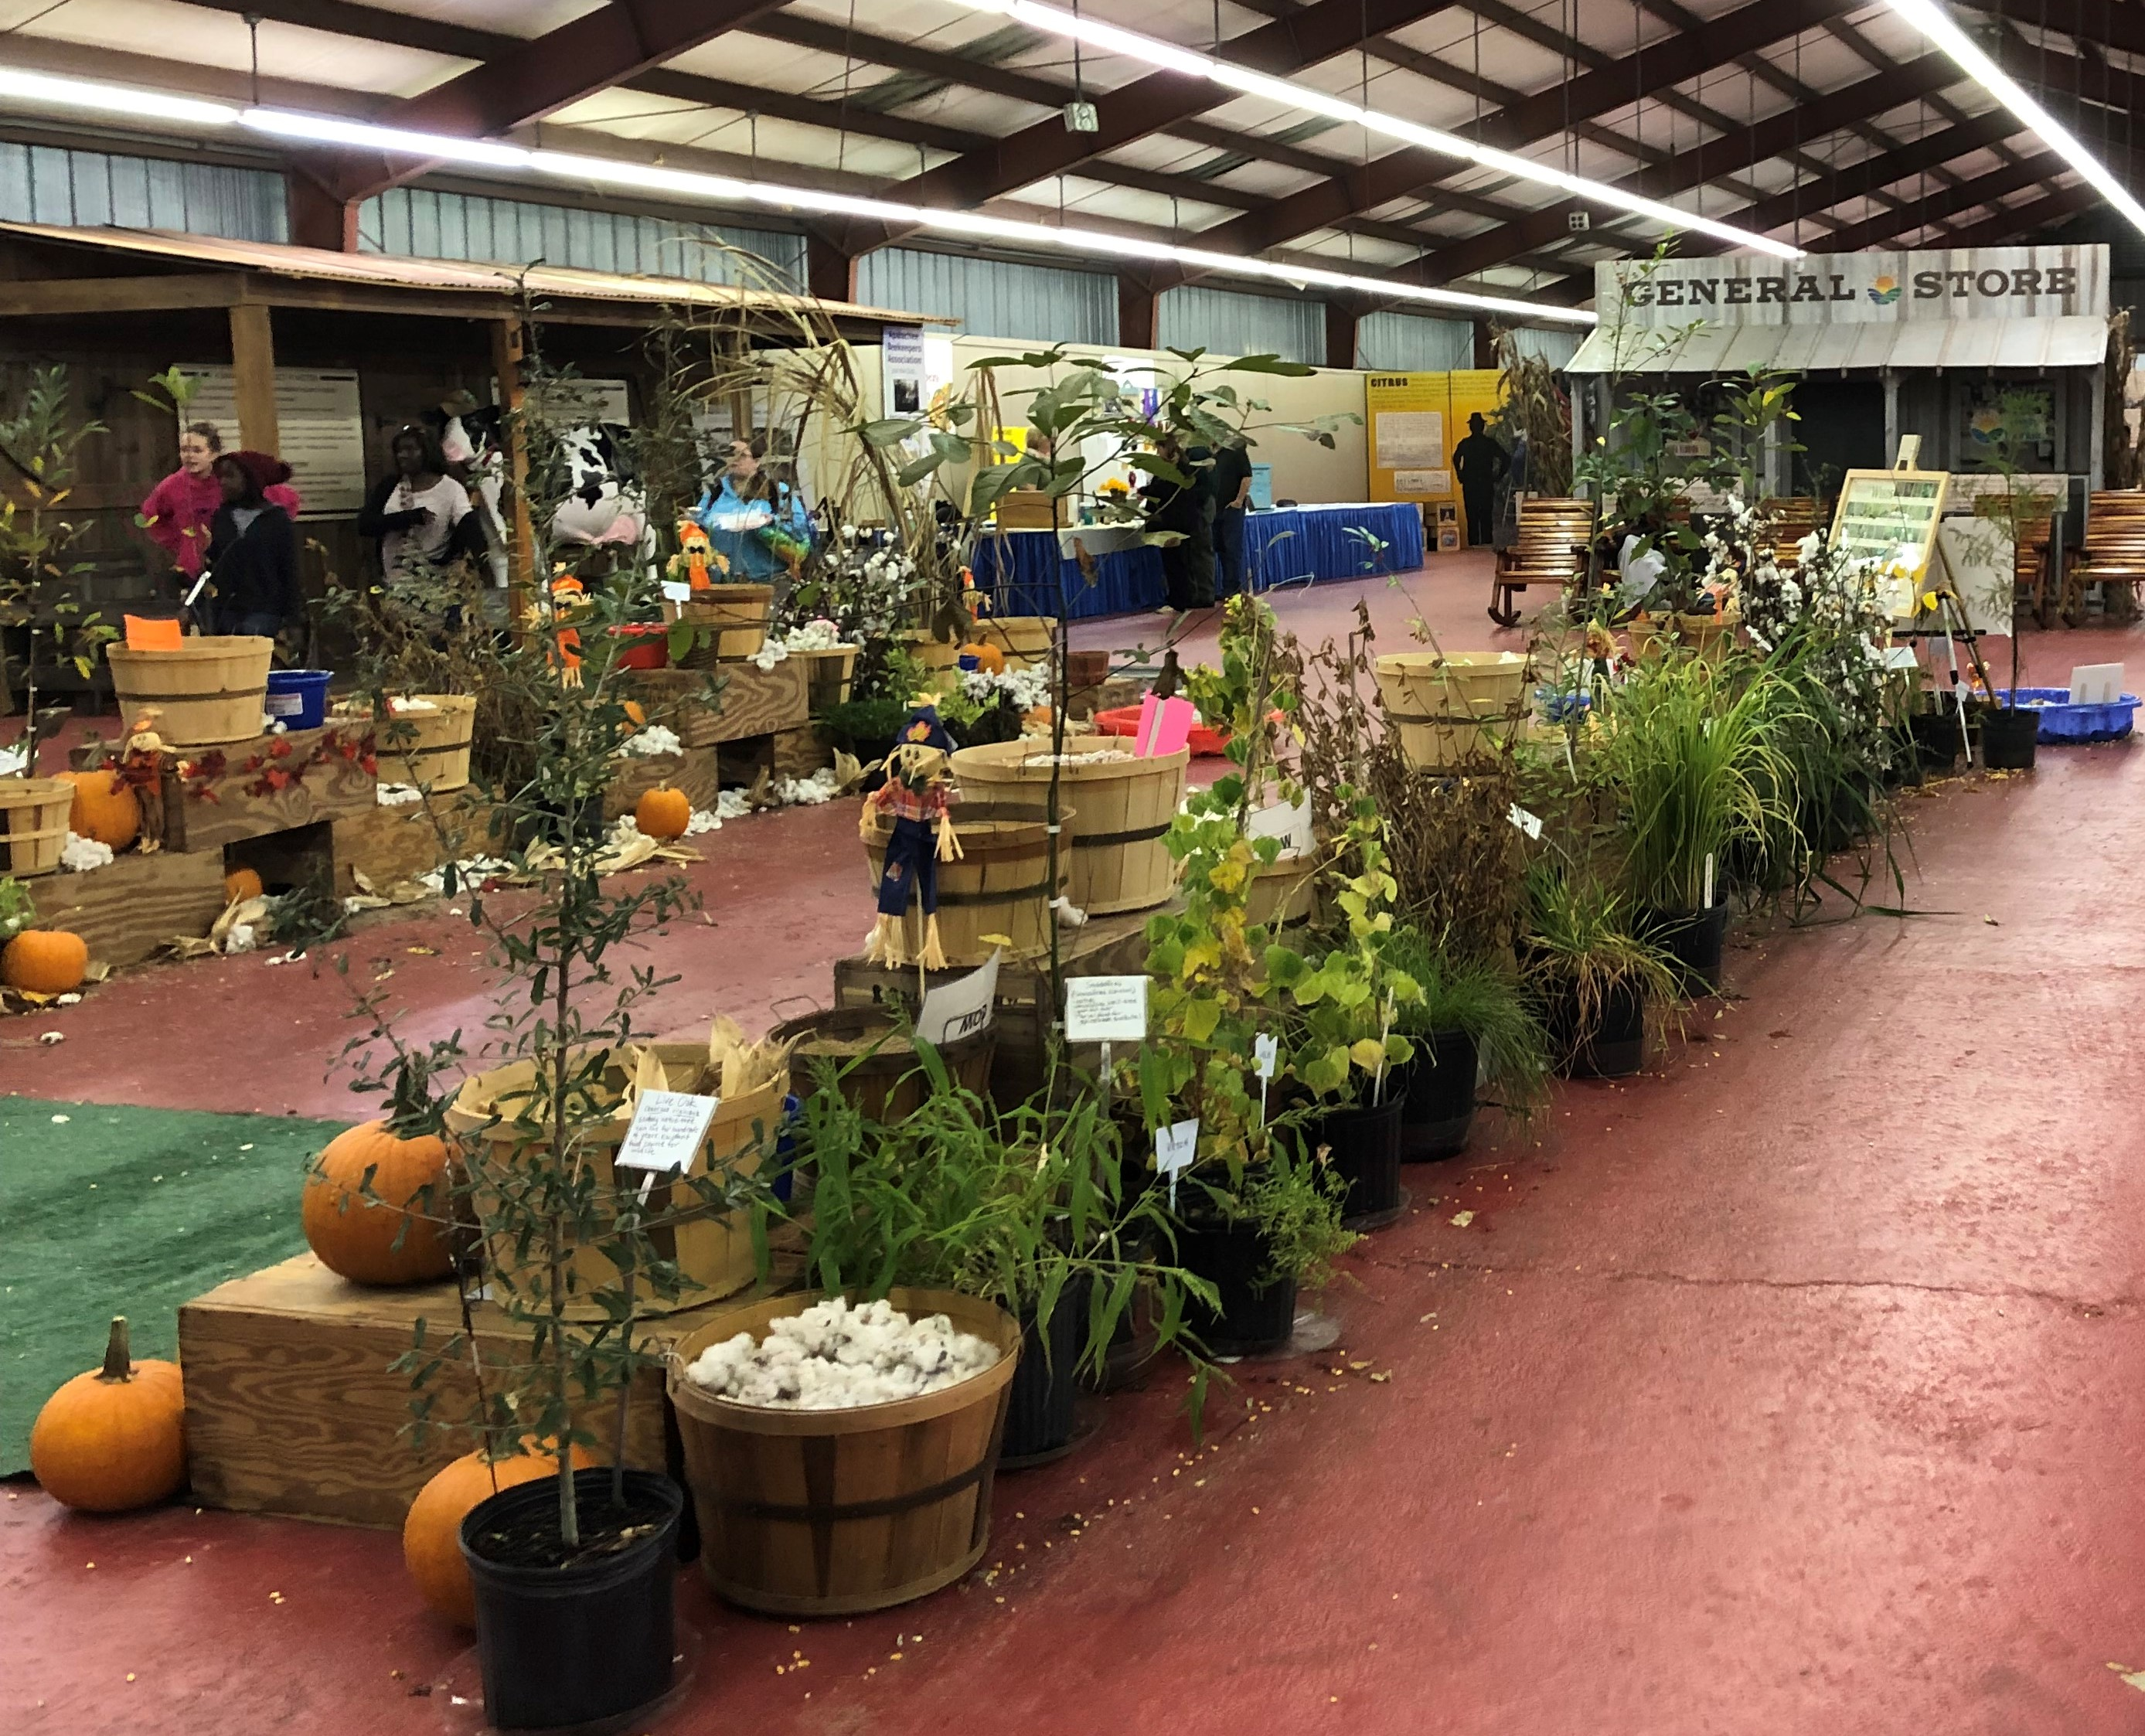 There are hands-on agricultural crop displays and much more in the UF/IFAS building at the North Florida Fair. Photo by Molly Jameson.